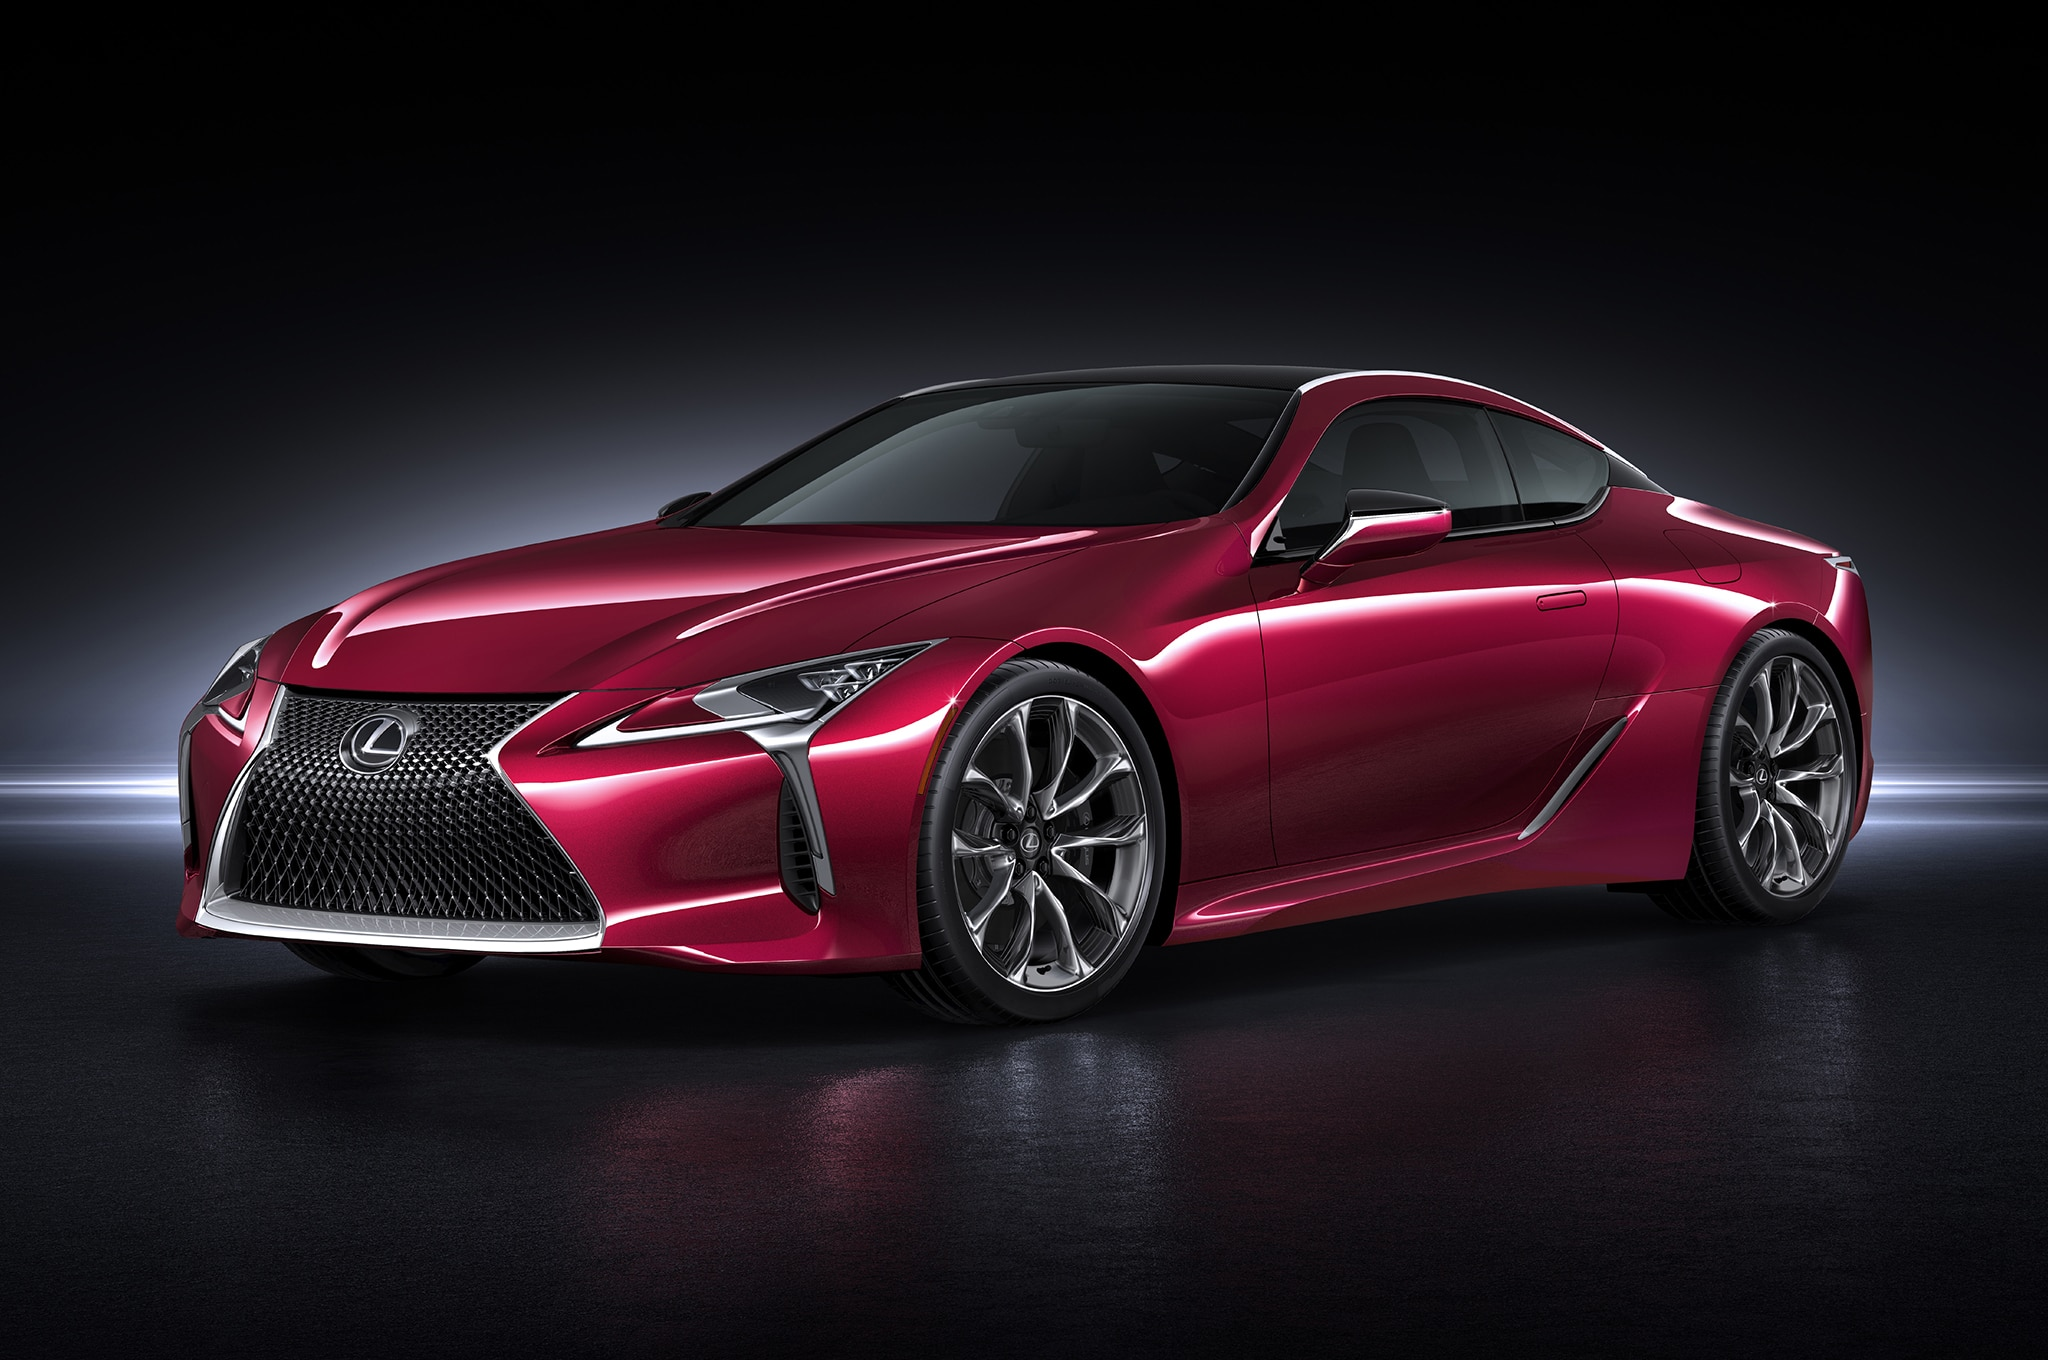 2017 Lexus LC 500: Toyoda's Vision For Lexus Comes Into Focus